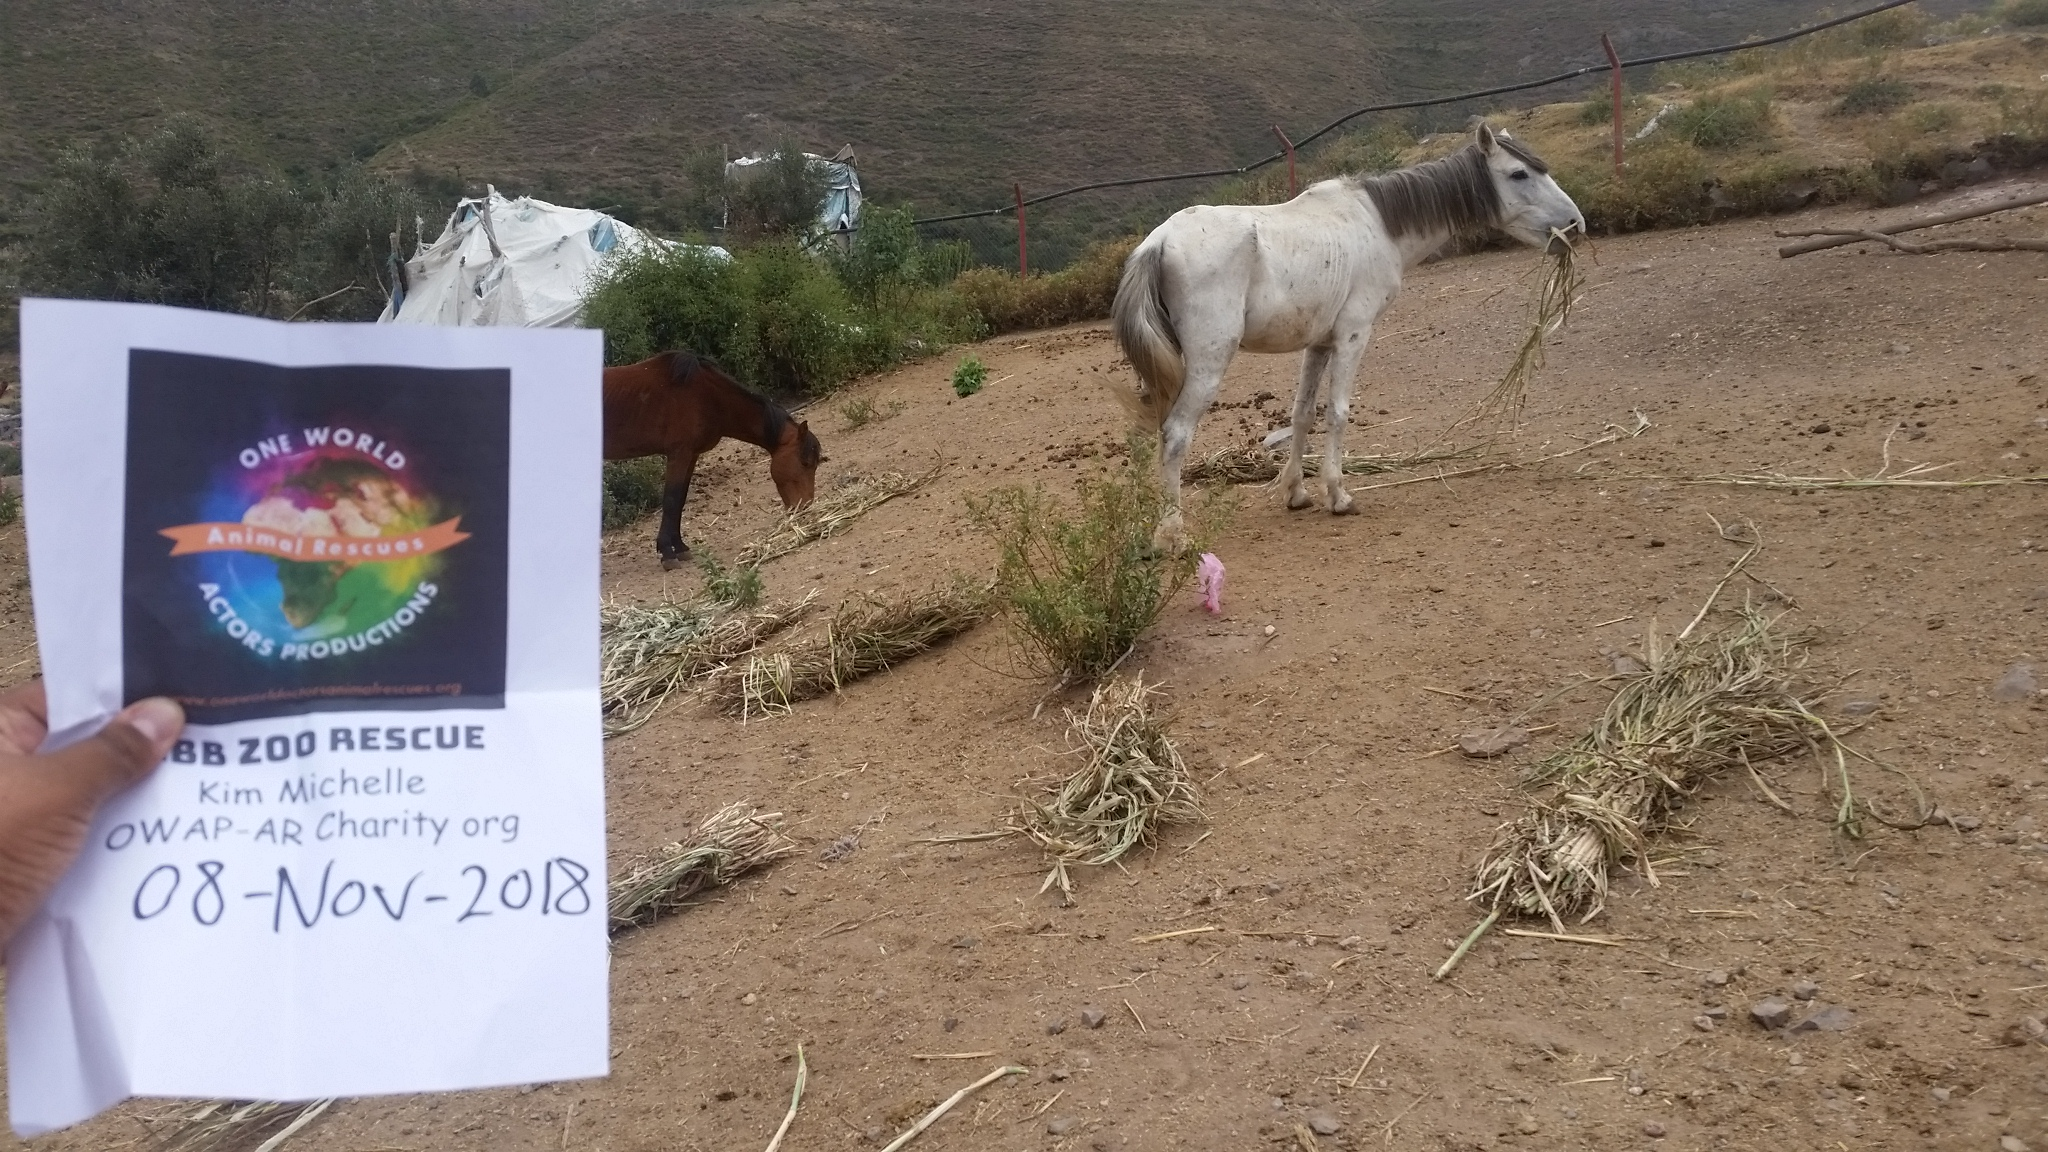 ibb zoo horses eating OWAP AR delivery 8 NOV 2018 our sign Hisham pic and work.jpg